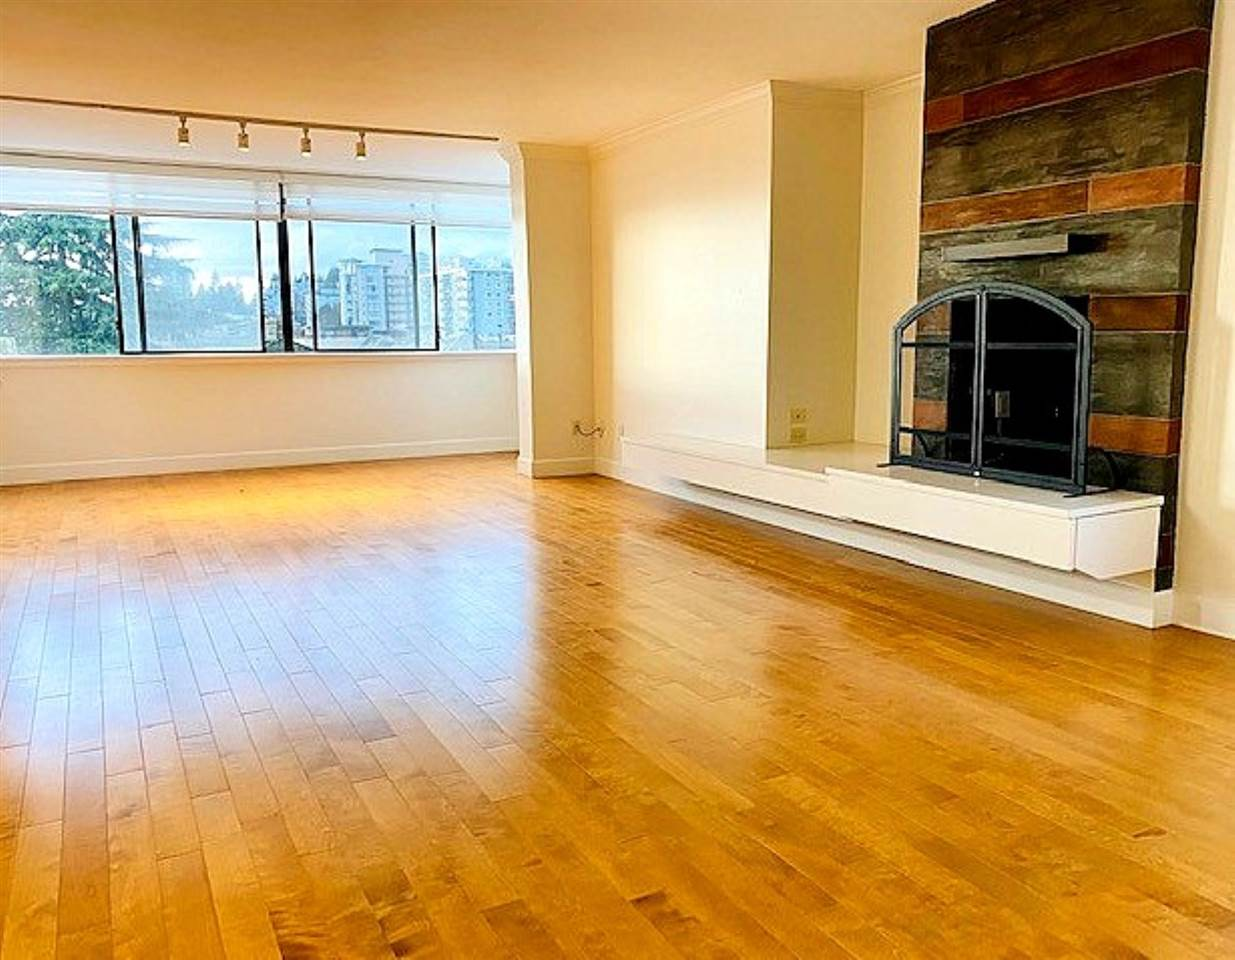 302 460 14TH STREET - Ambleside Apartment/Condo for sale, 2 Bedrooms (R2501787) - #2